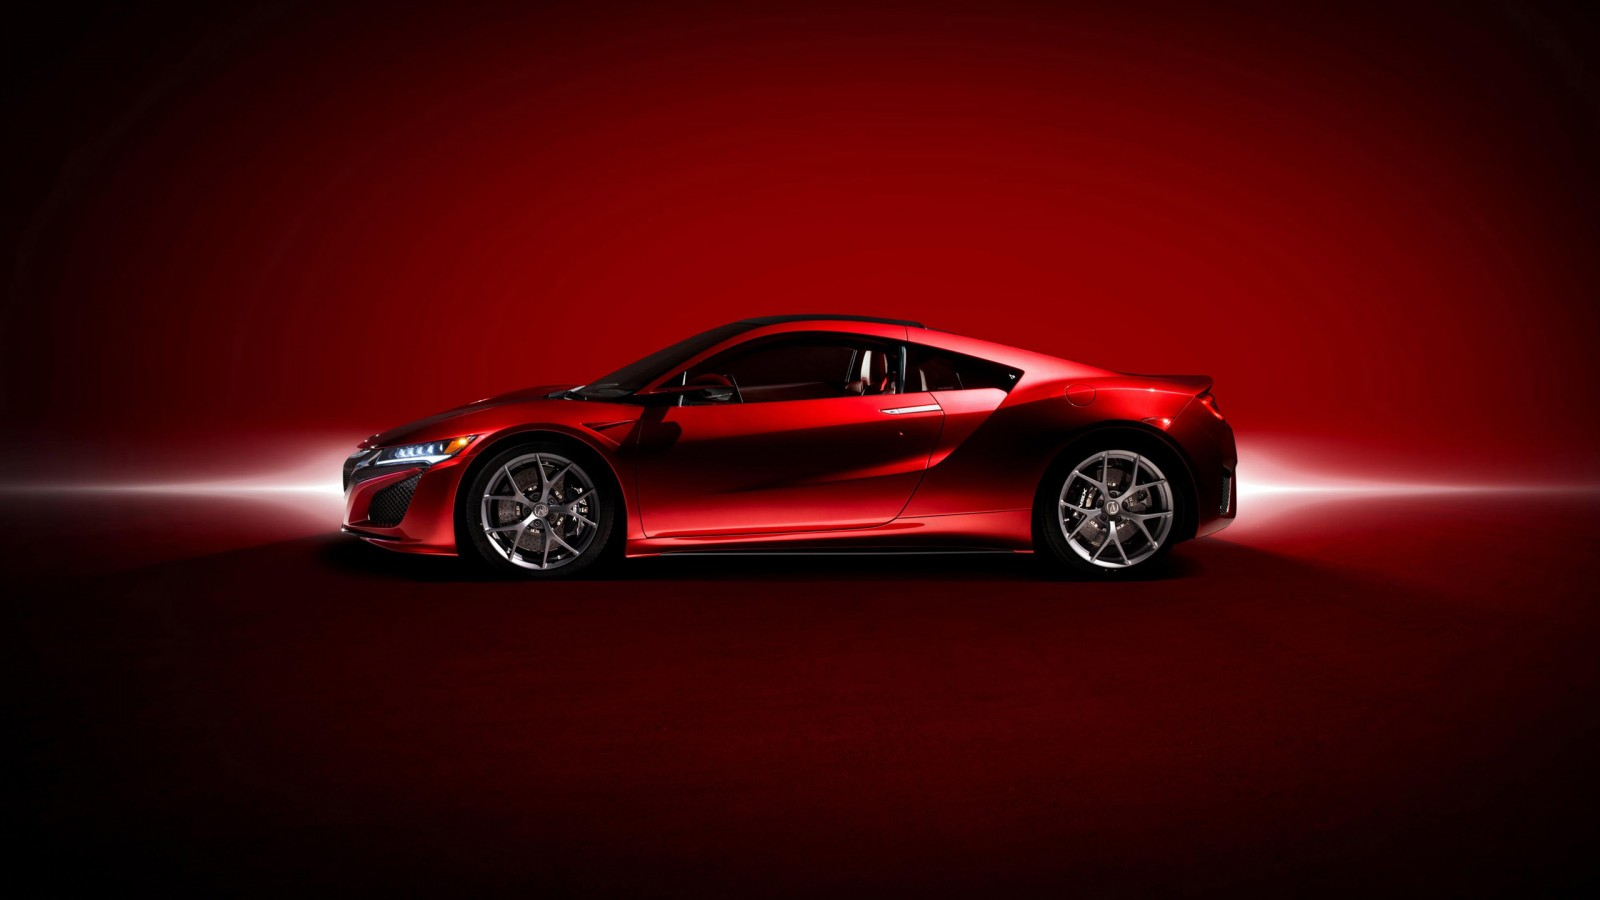 Best 3d Wallpapers For Laptop Acura Nsx 2017 Wallpaper Hd Car Wallpapers Id 6575